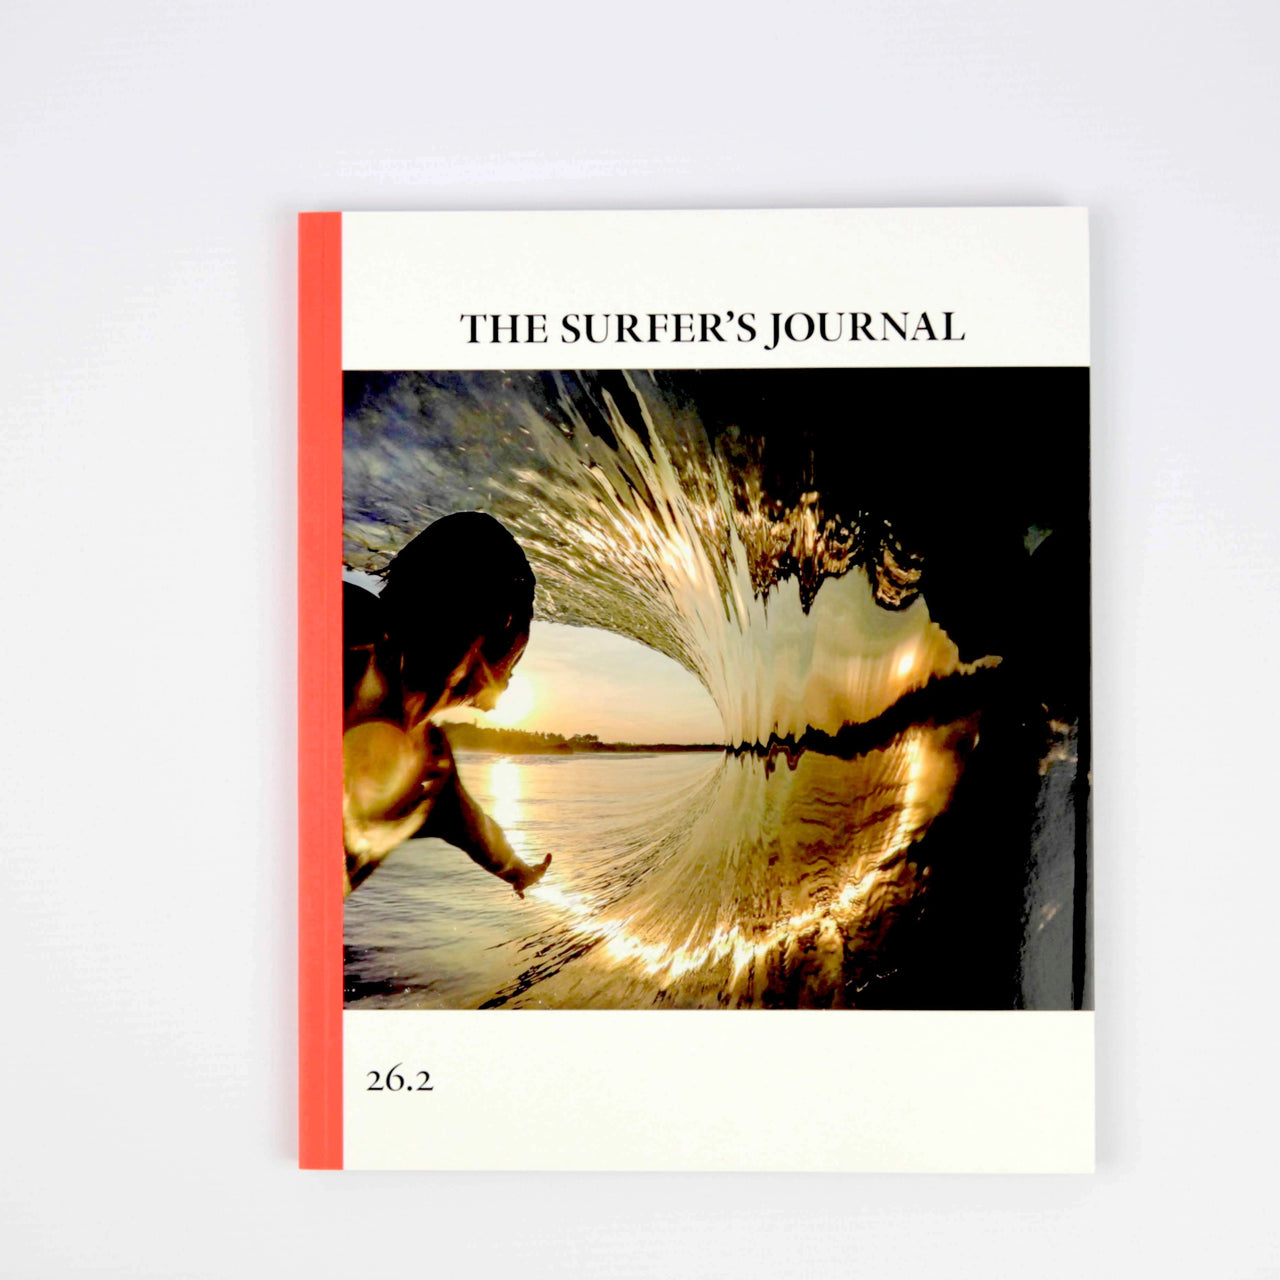 The Surfer's Journal  26.2 - Just the Sea by SEA LOVERS